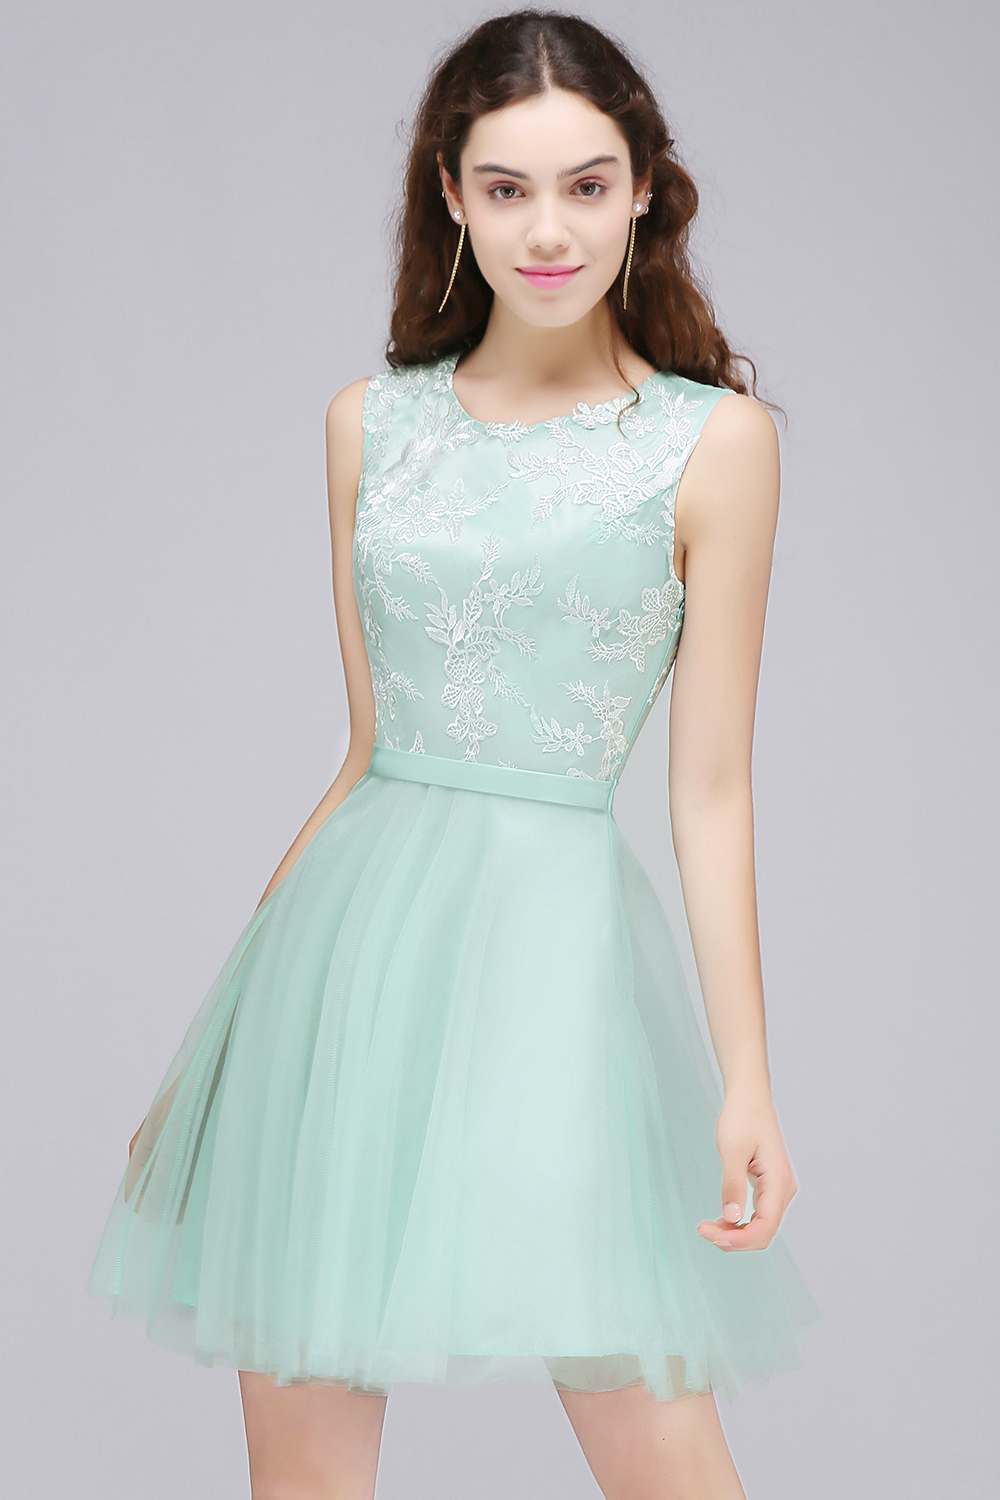 Magnificent Party Cheap Dresses Composition - All Wedding Dresses ...